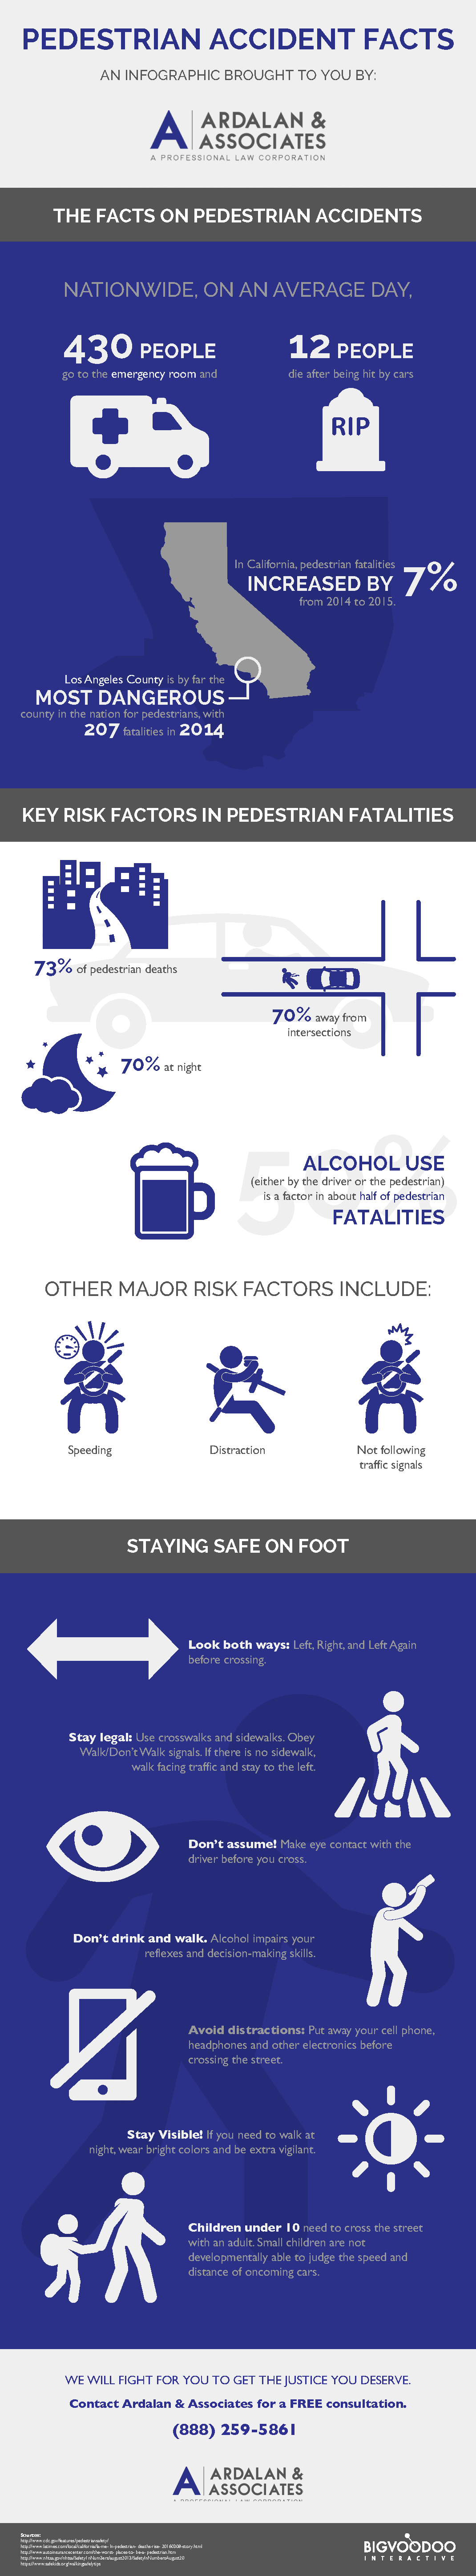 Pedestrian Accident Facts